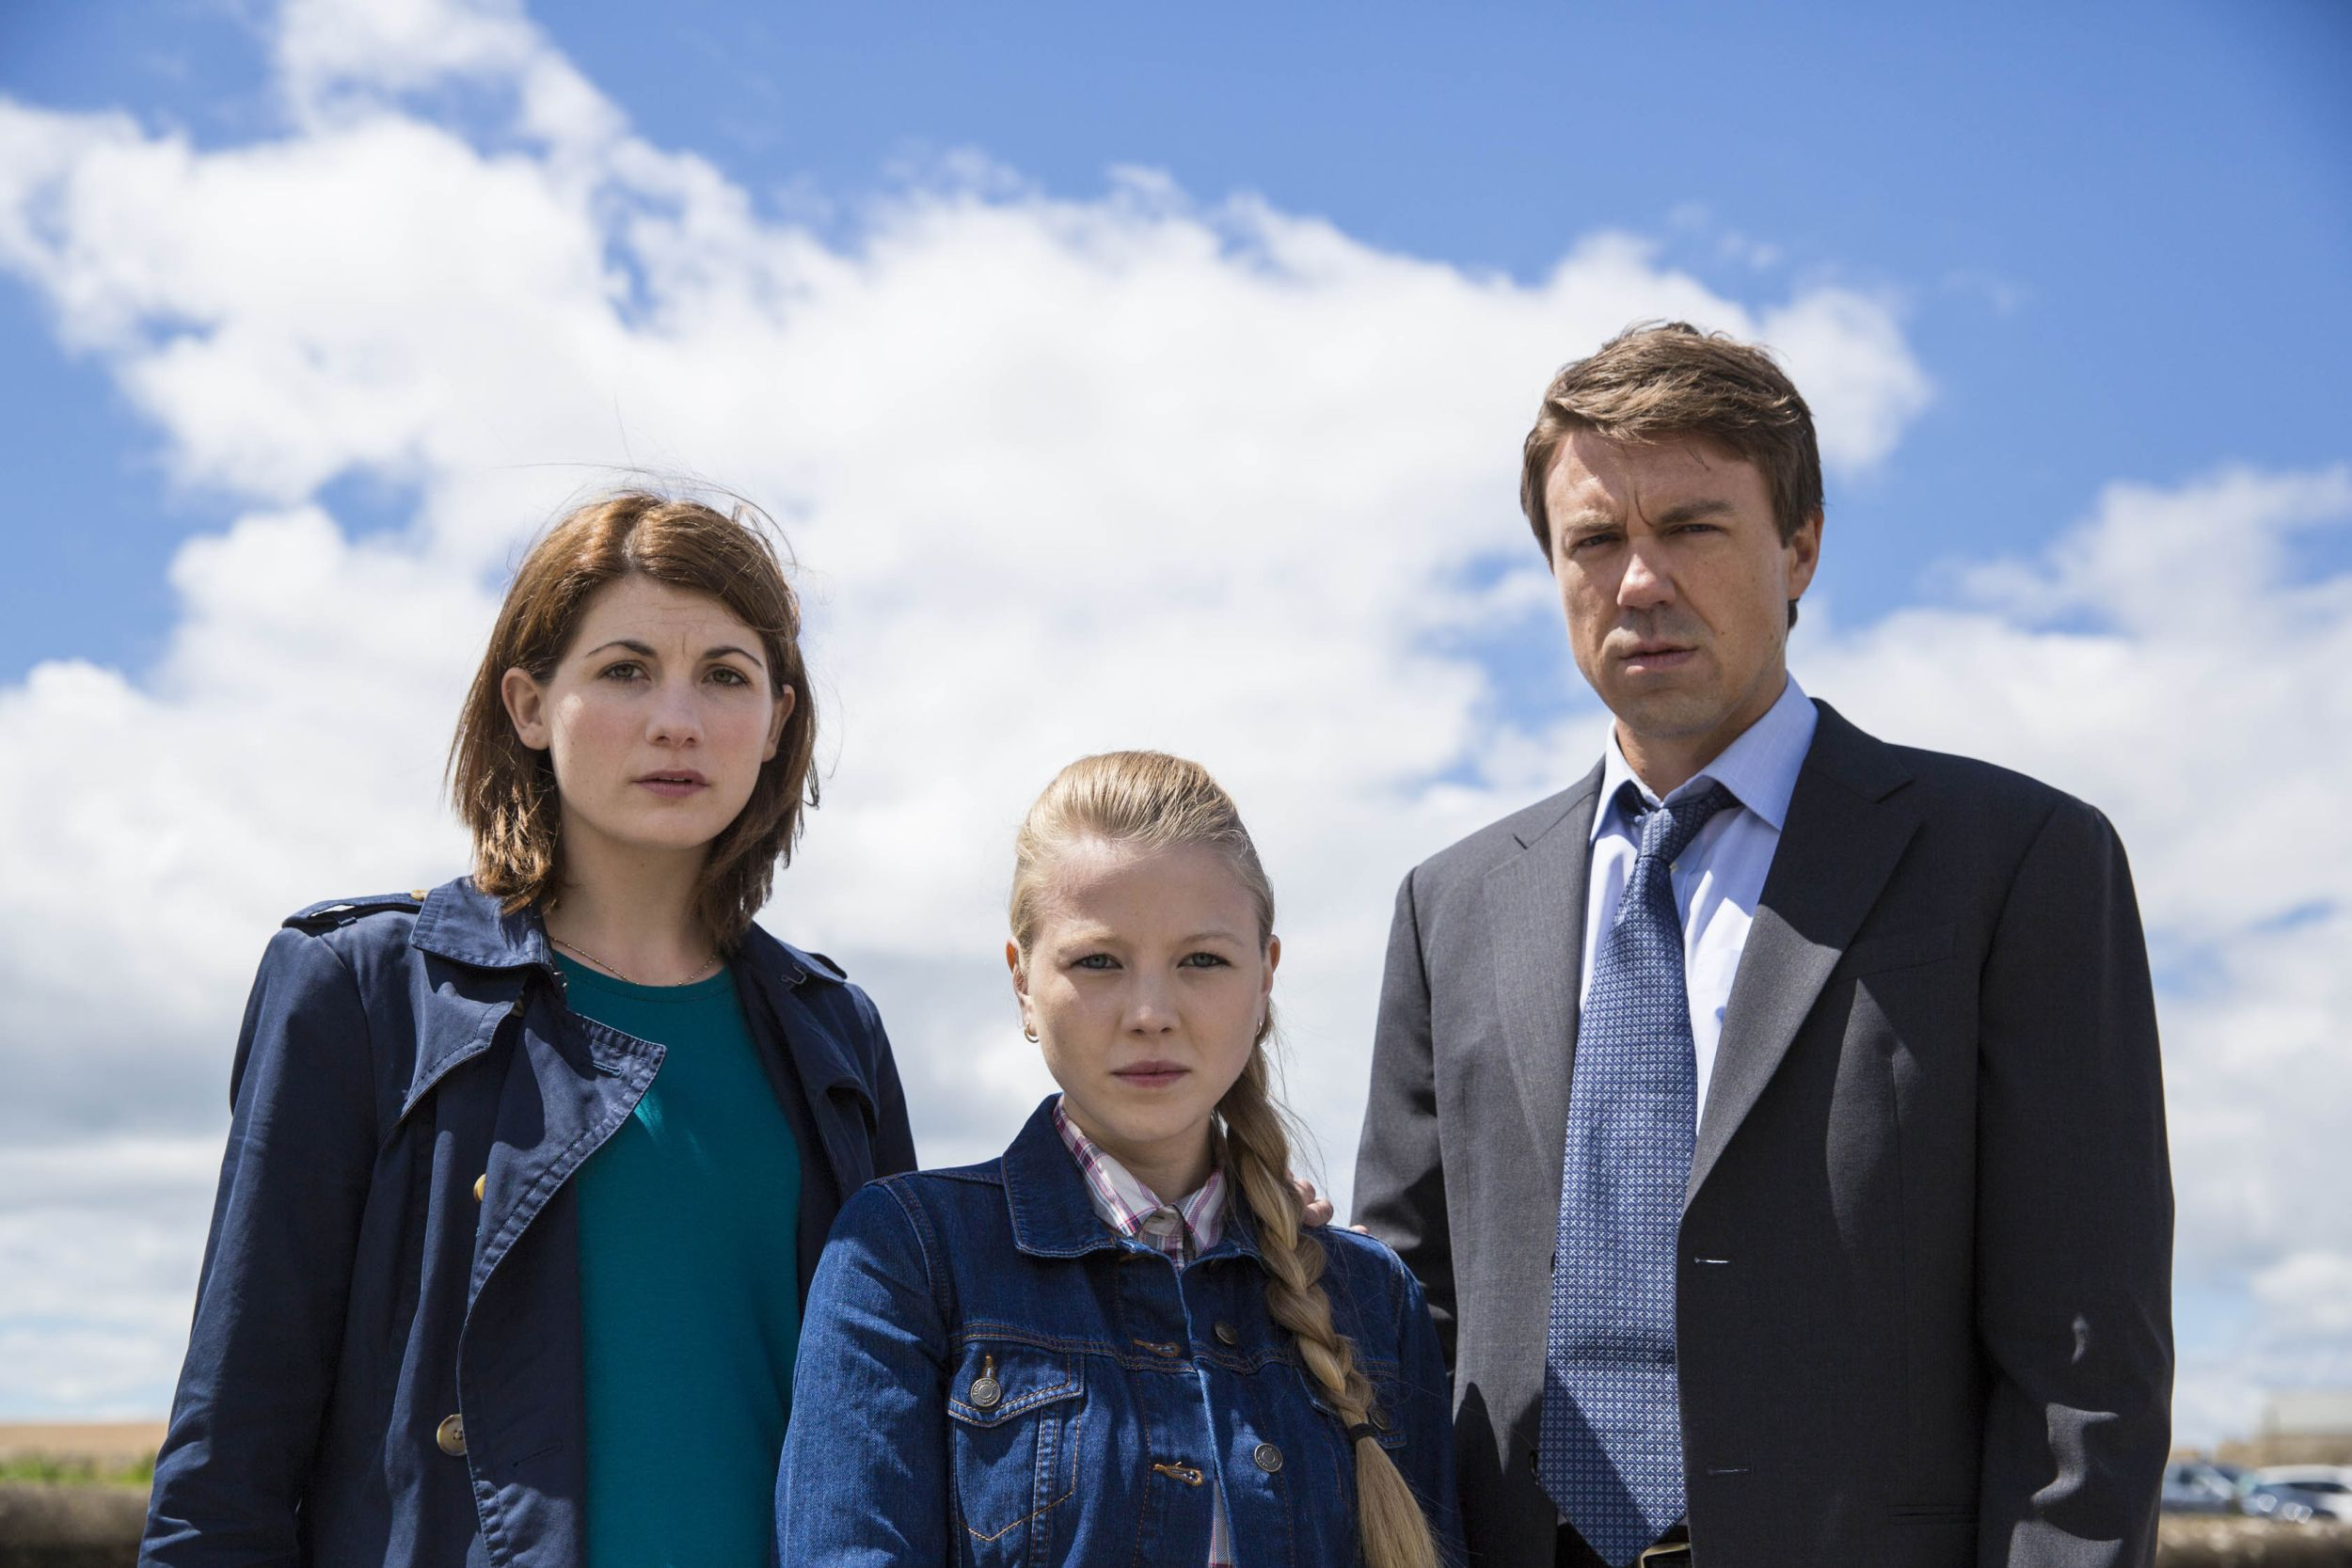 Broadchurch - 02x08 - Series 2, Episode 8